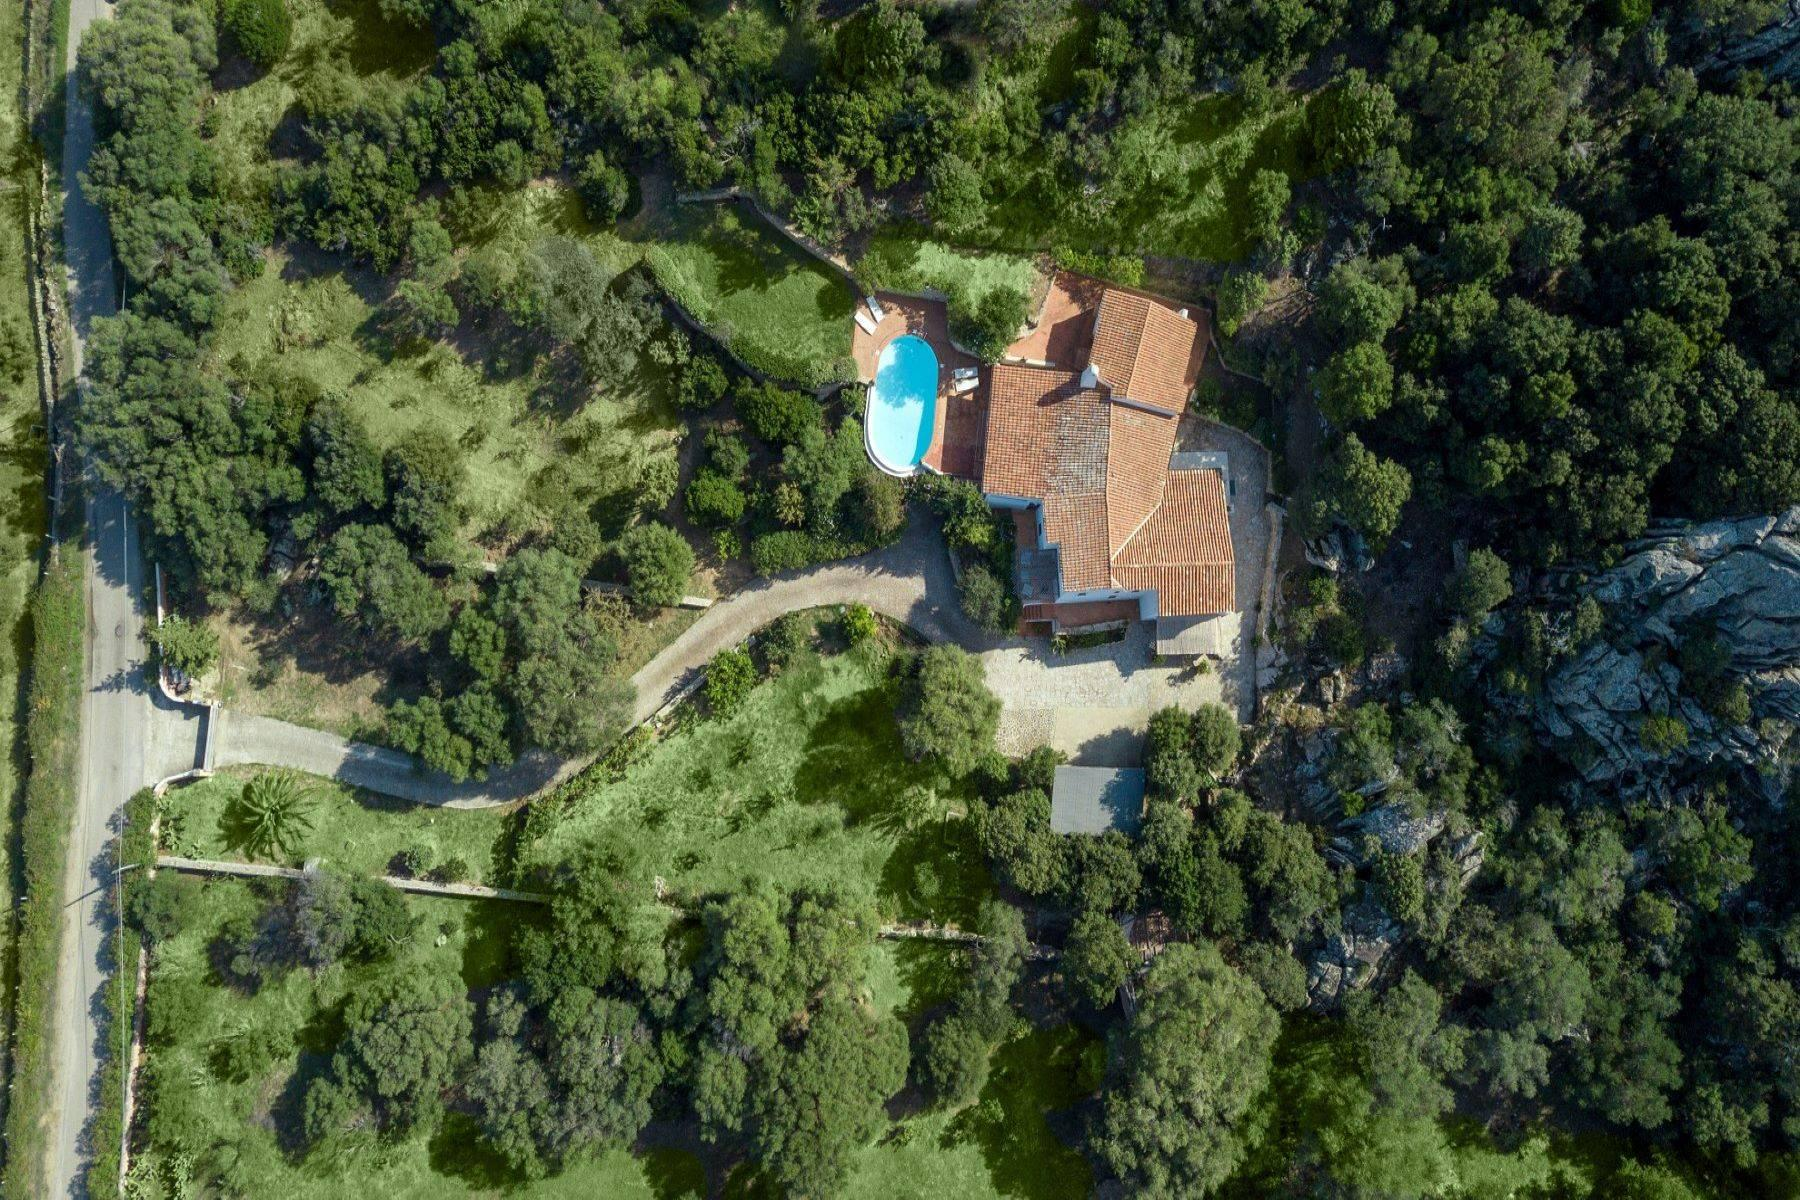 Country estate with swimming pool, just a few minutes away from the Emerald Coast - 11